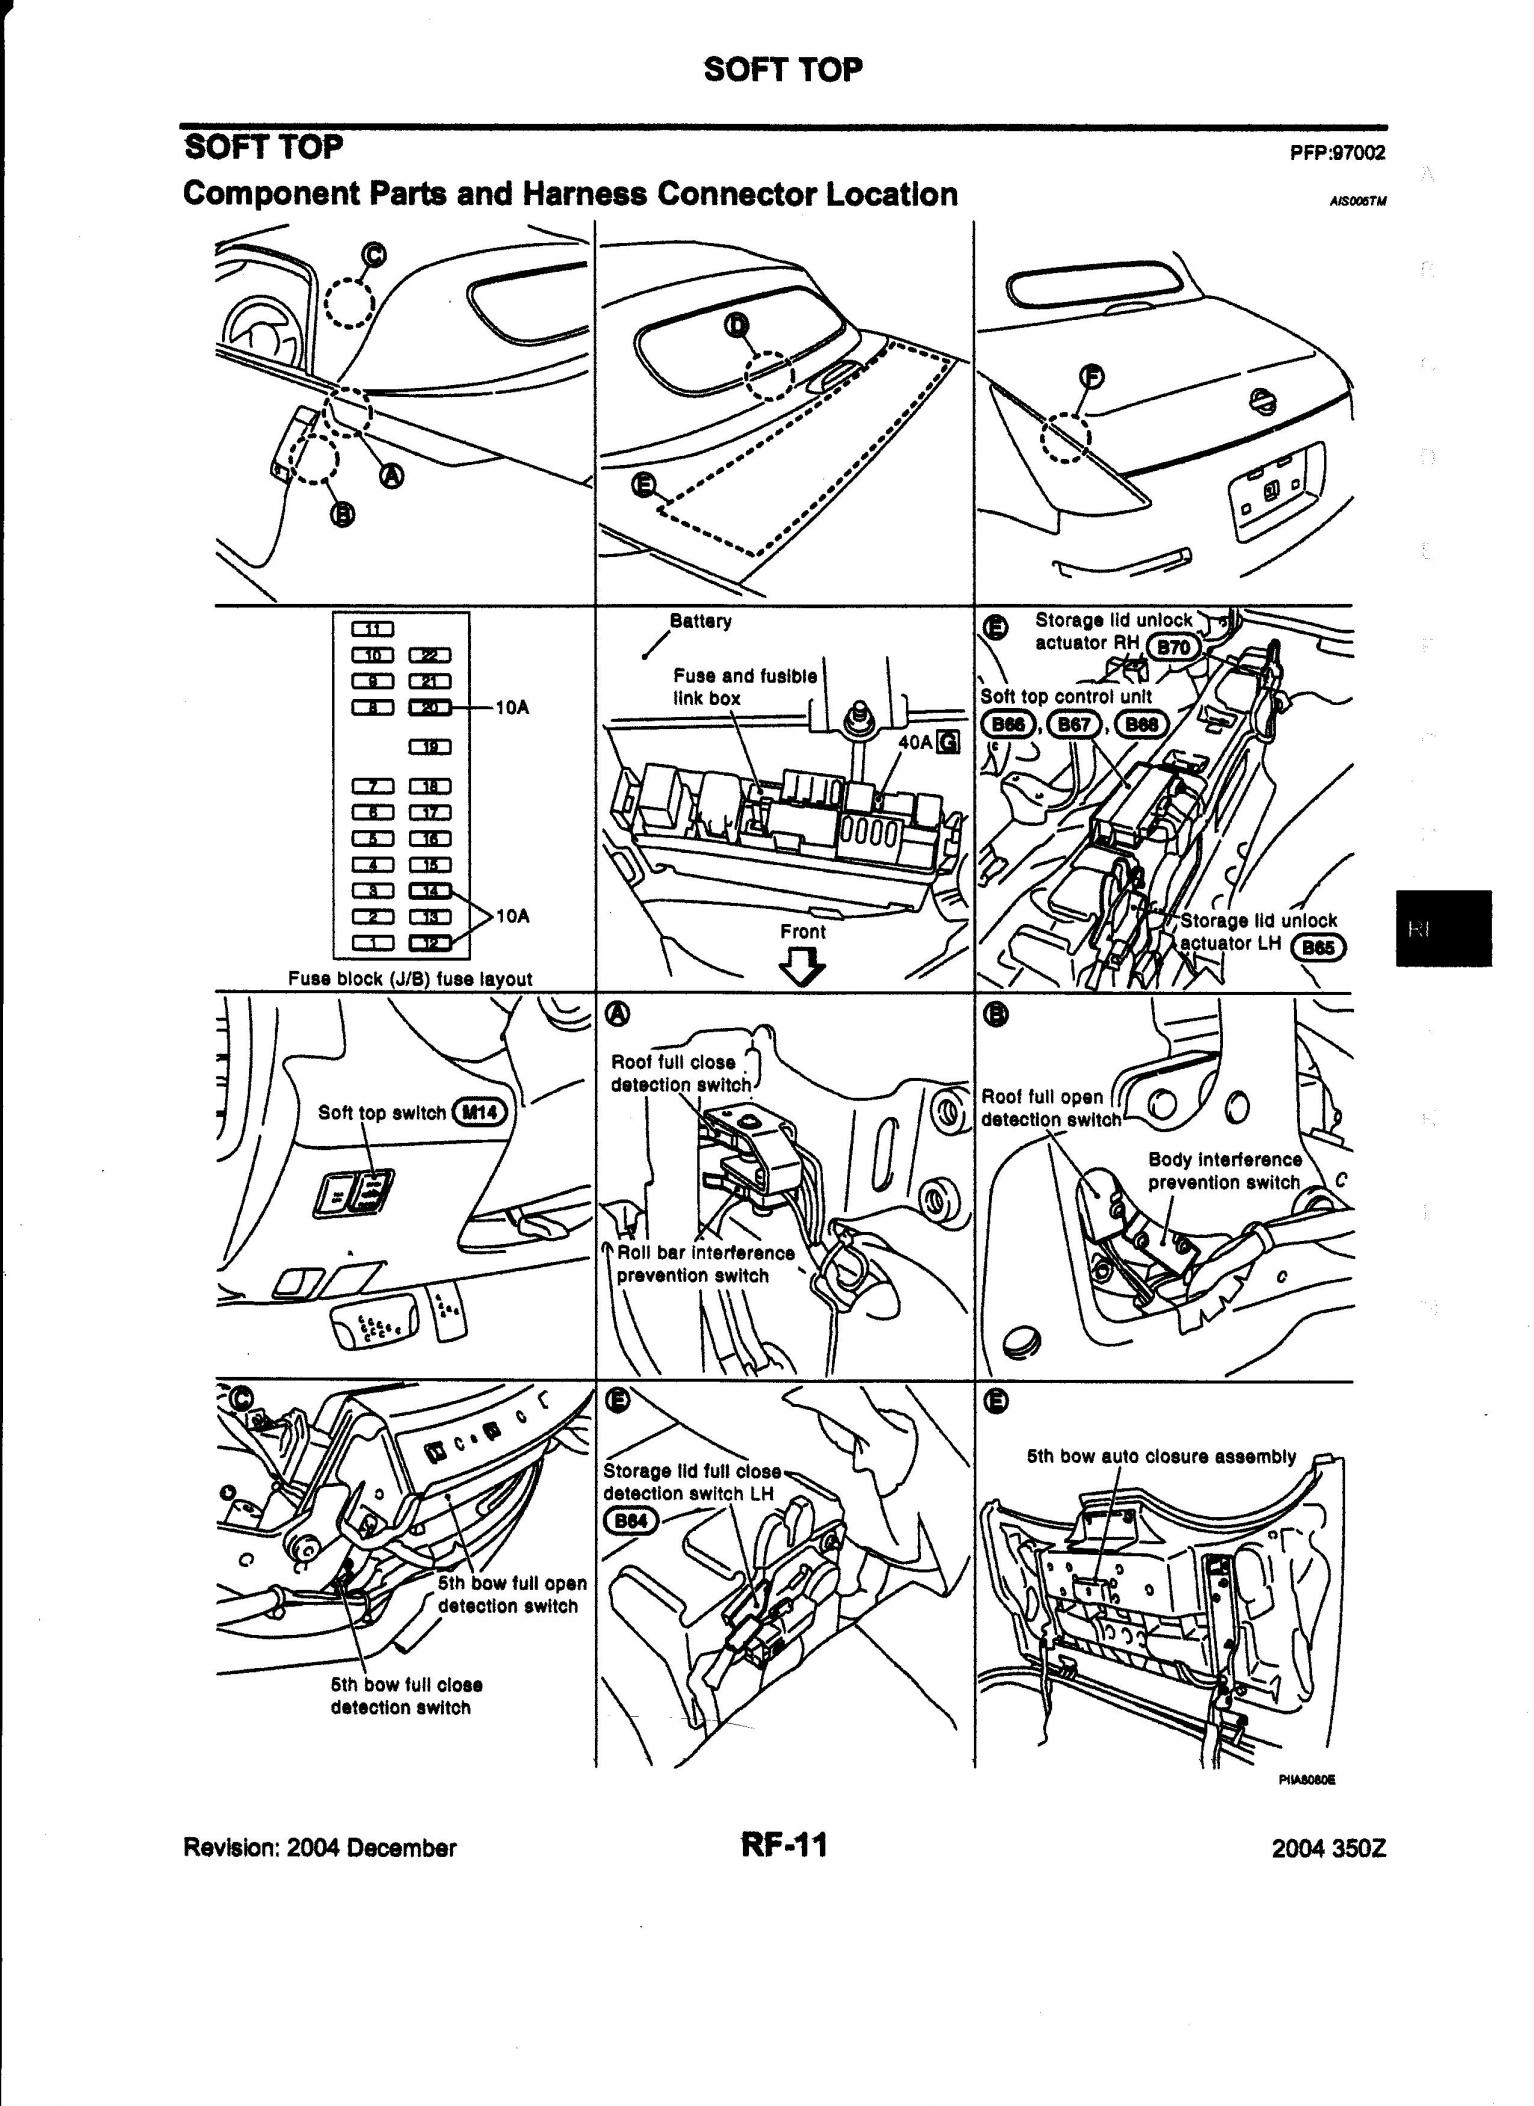 Convertible Top Electrical Operation Breakdown